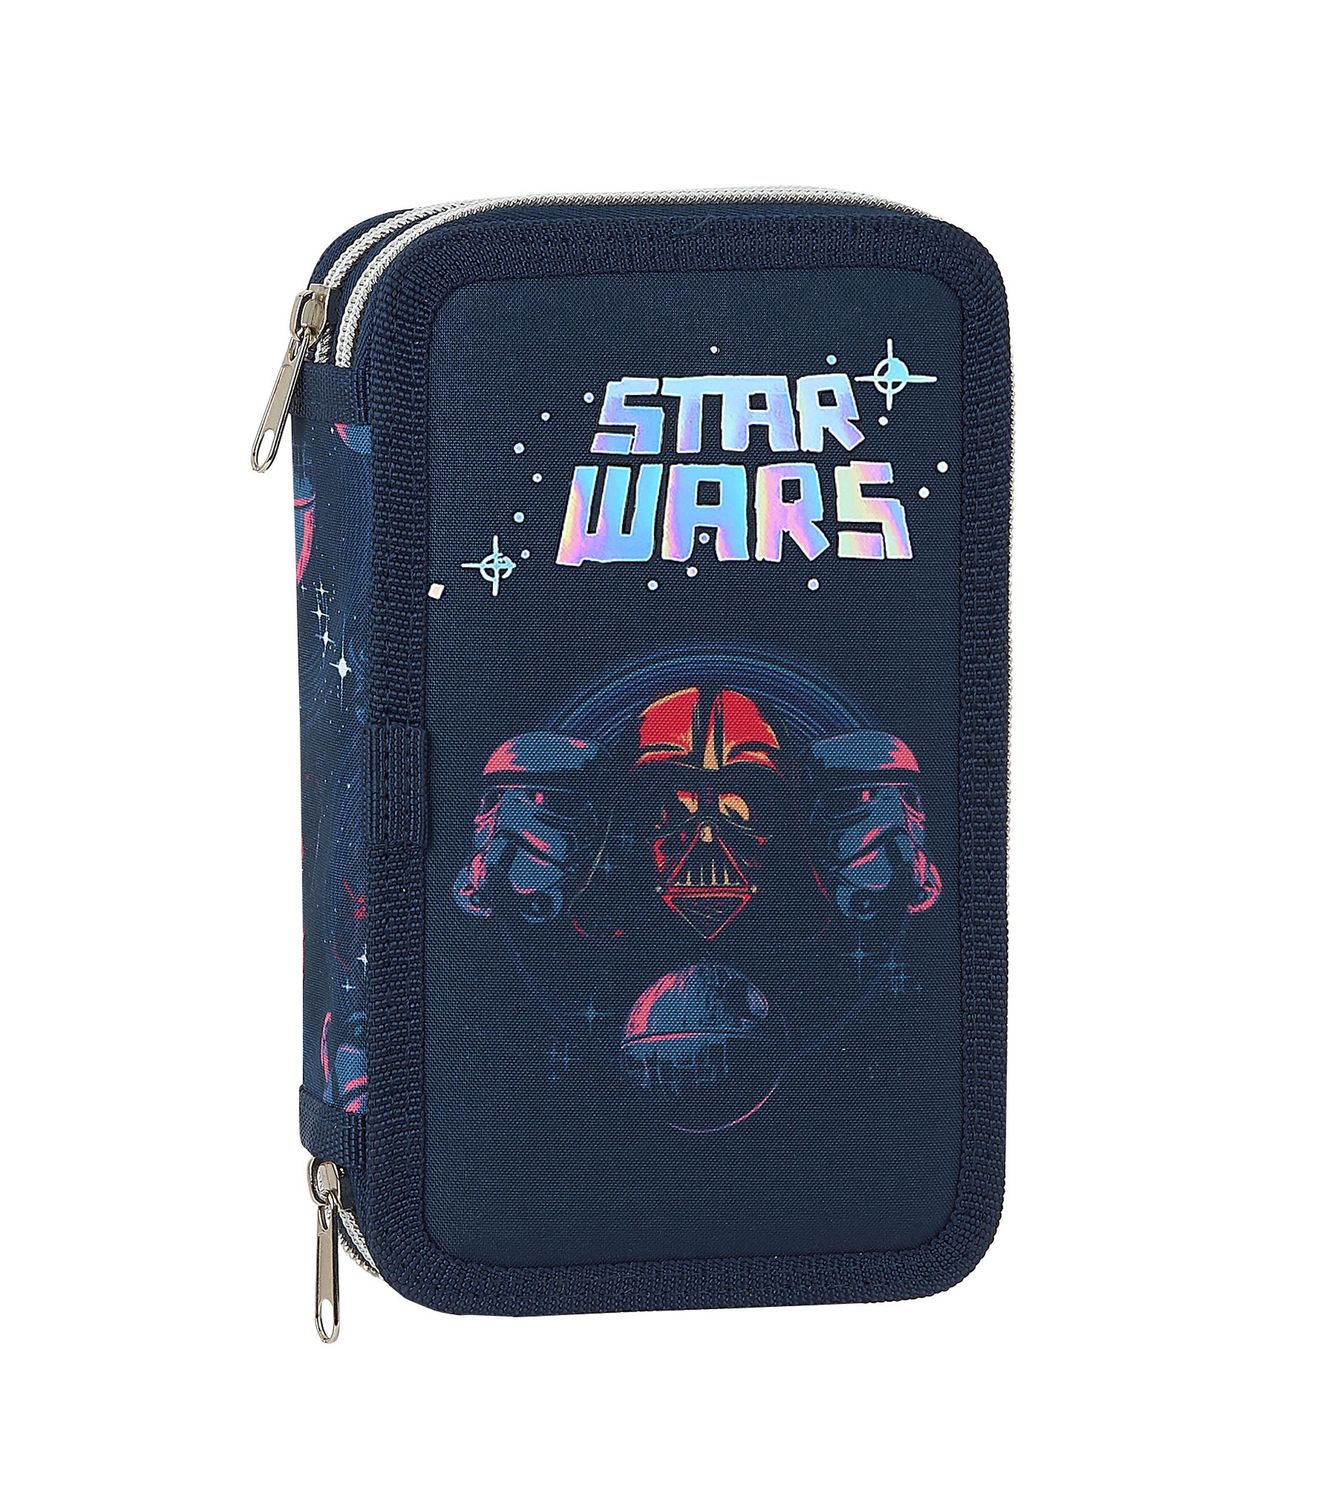 Star Wars DEATH STAR Double Tier Pencil Case Filled with 28 Piece – image 1